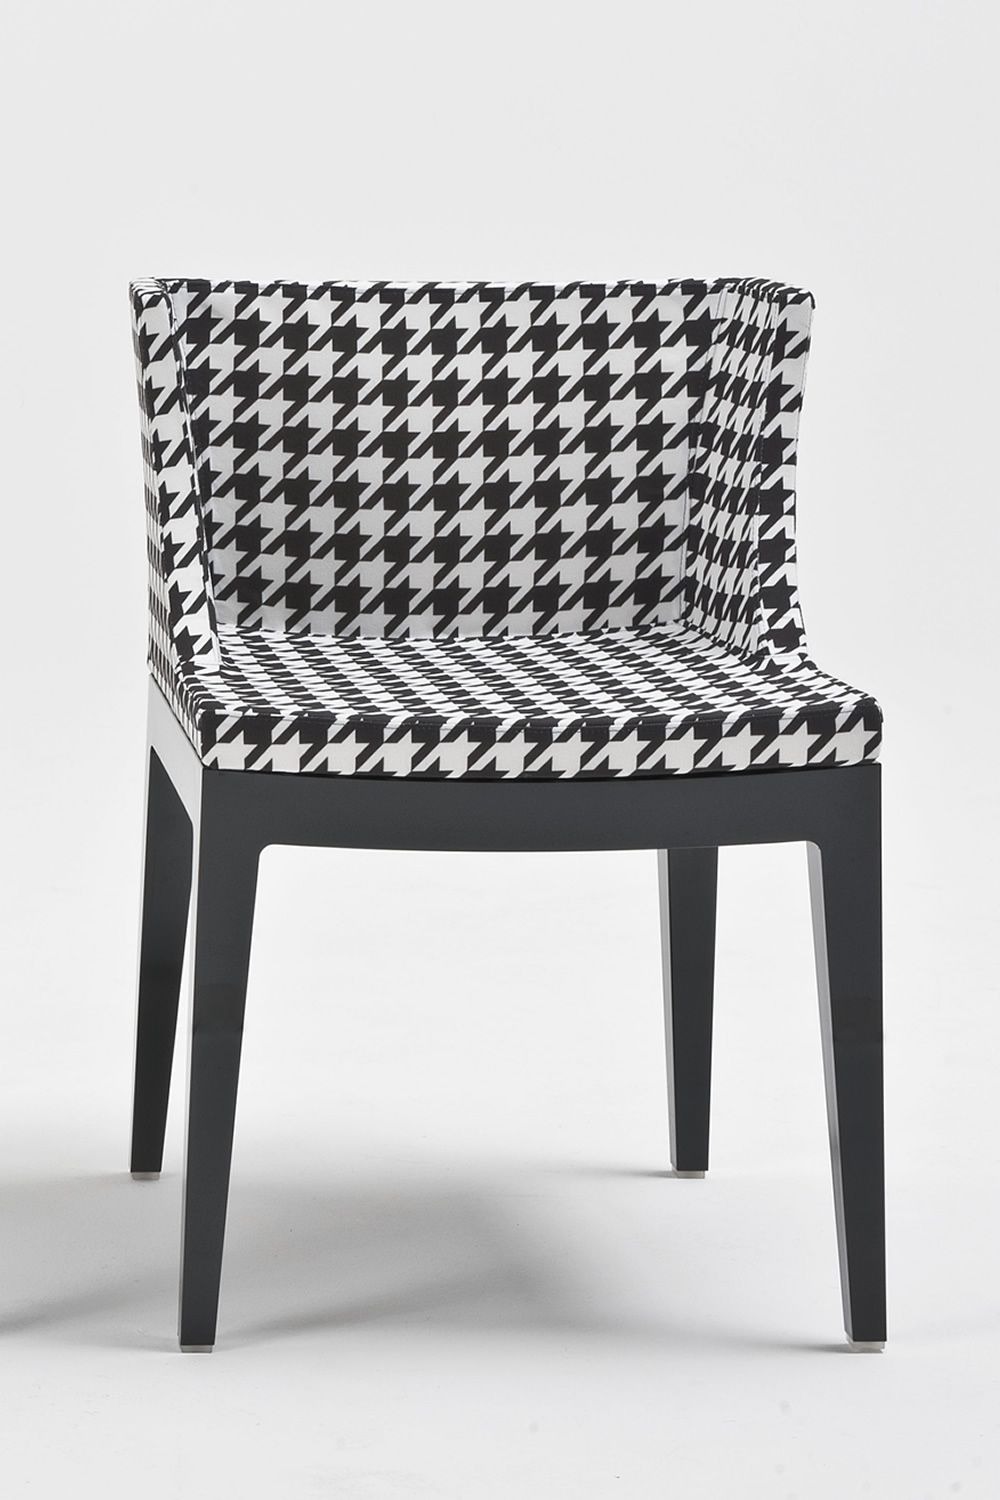 Mademoiselle design armchair by kartell with polycarbonate frame and uphols - Fauteuil mademoiselle kartell ...